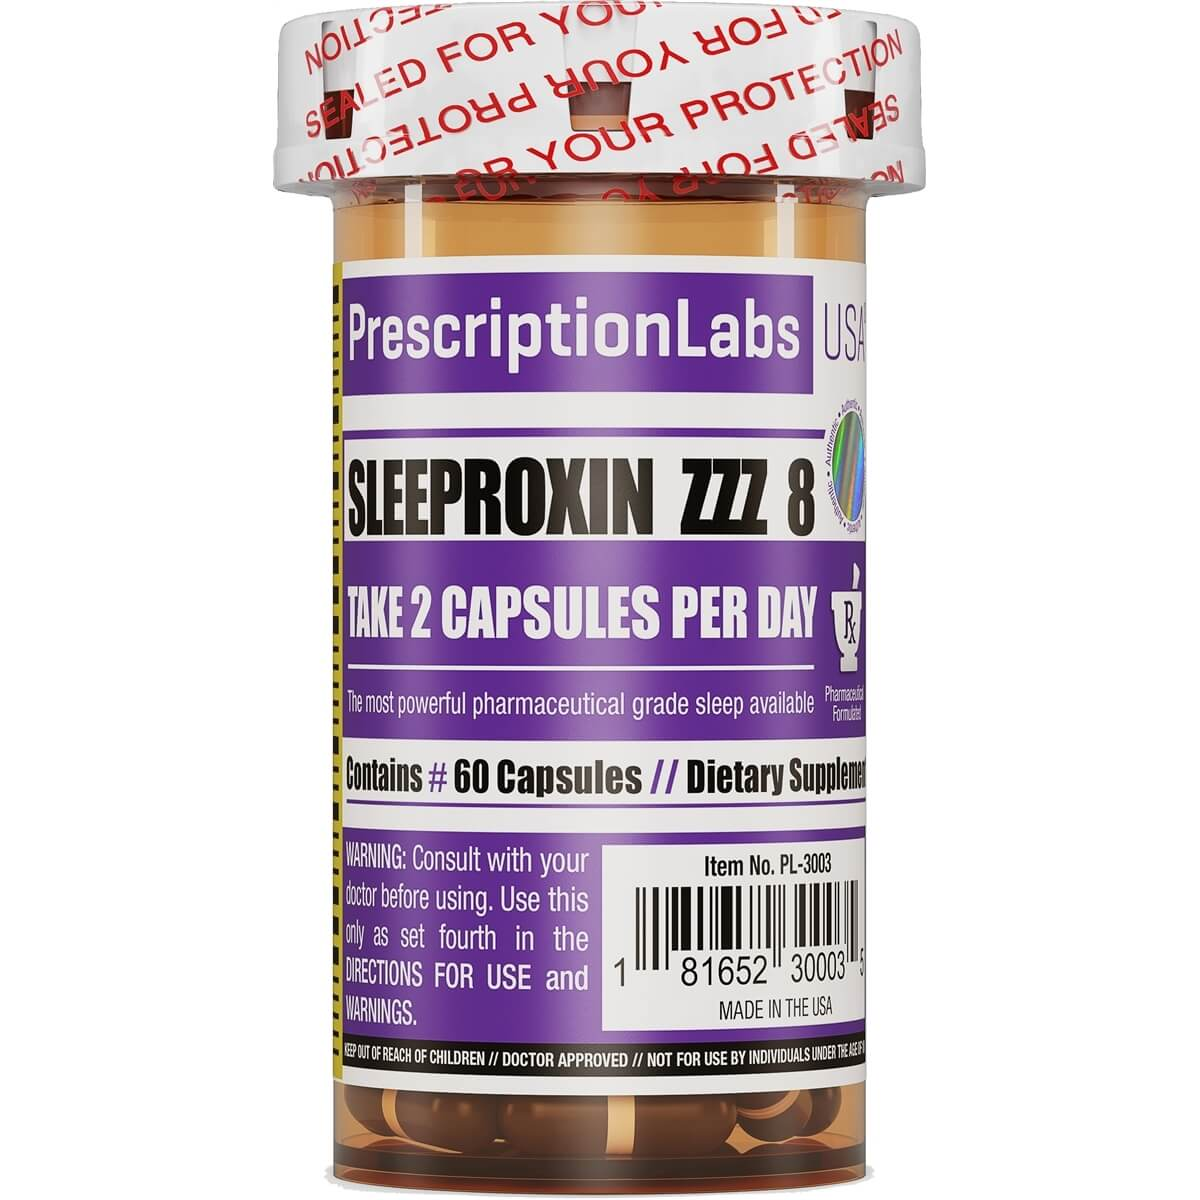 Sleeproxin ZZZ 8 Prescription Labs - 60 caps